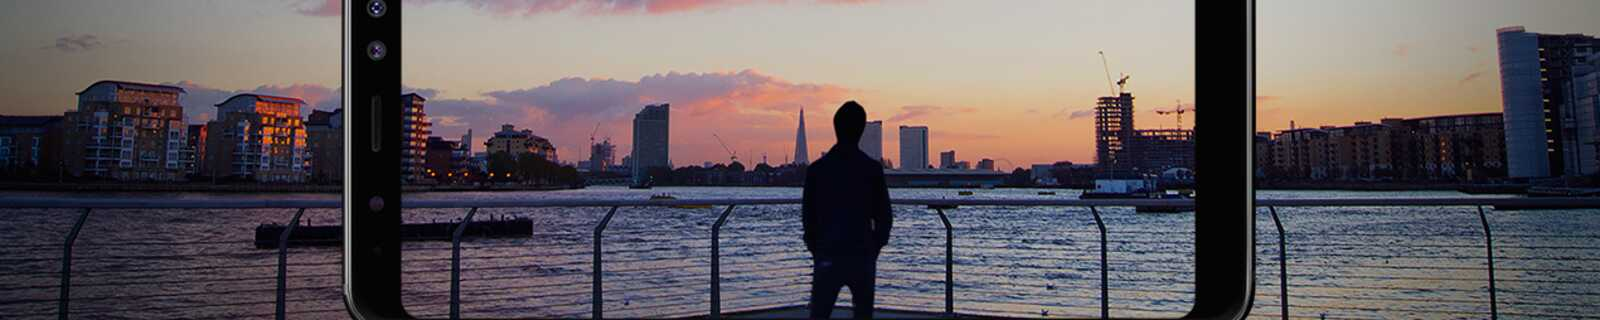 Phone camera capturing man enjoying sunset view over central London